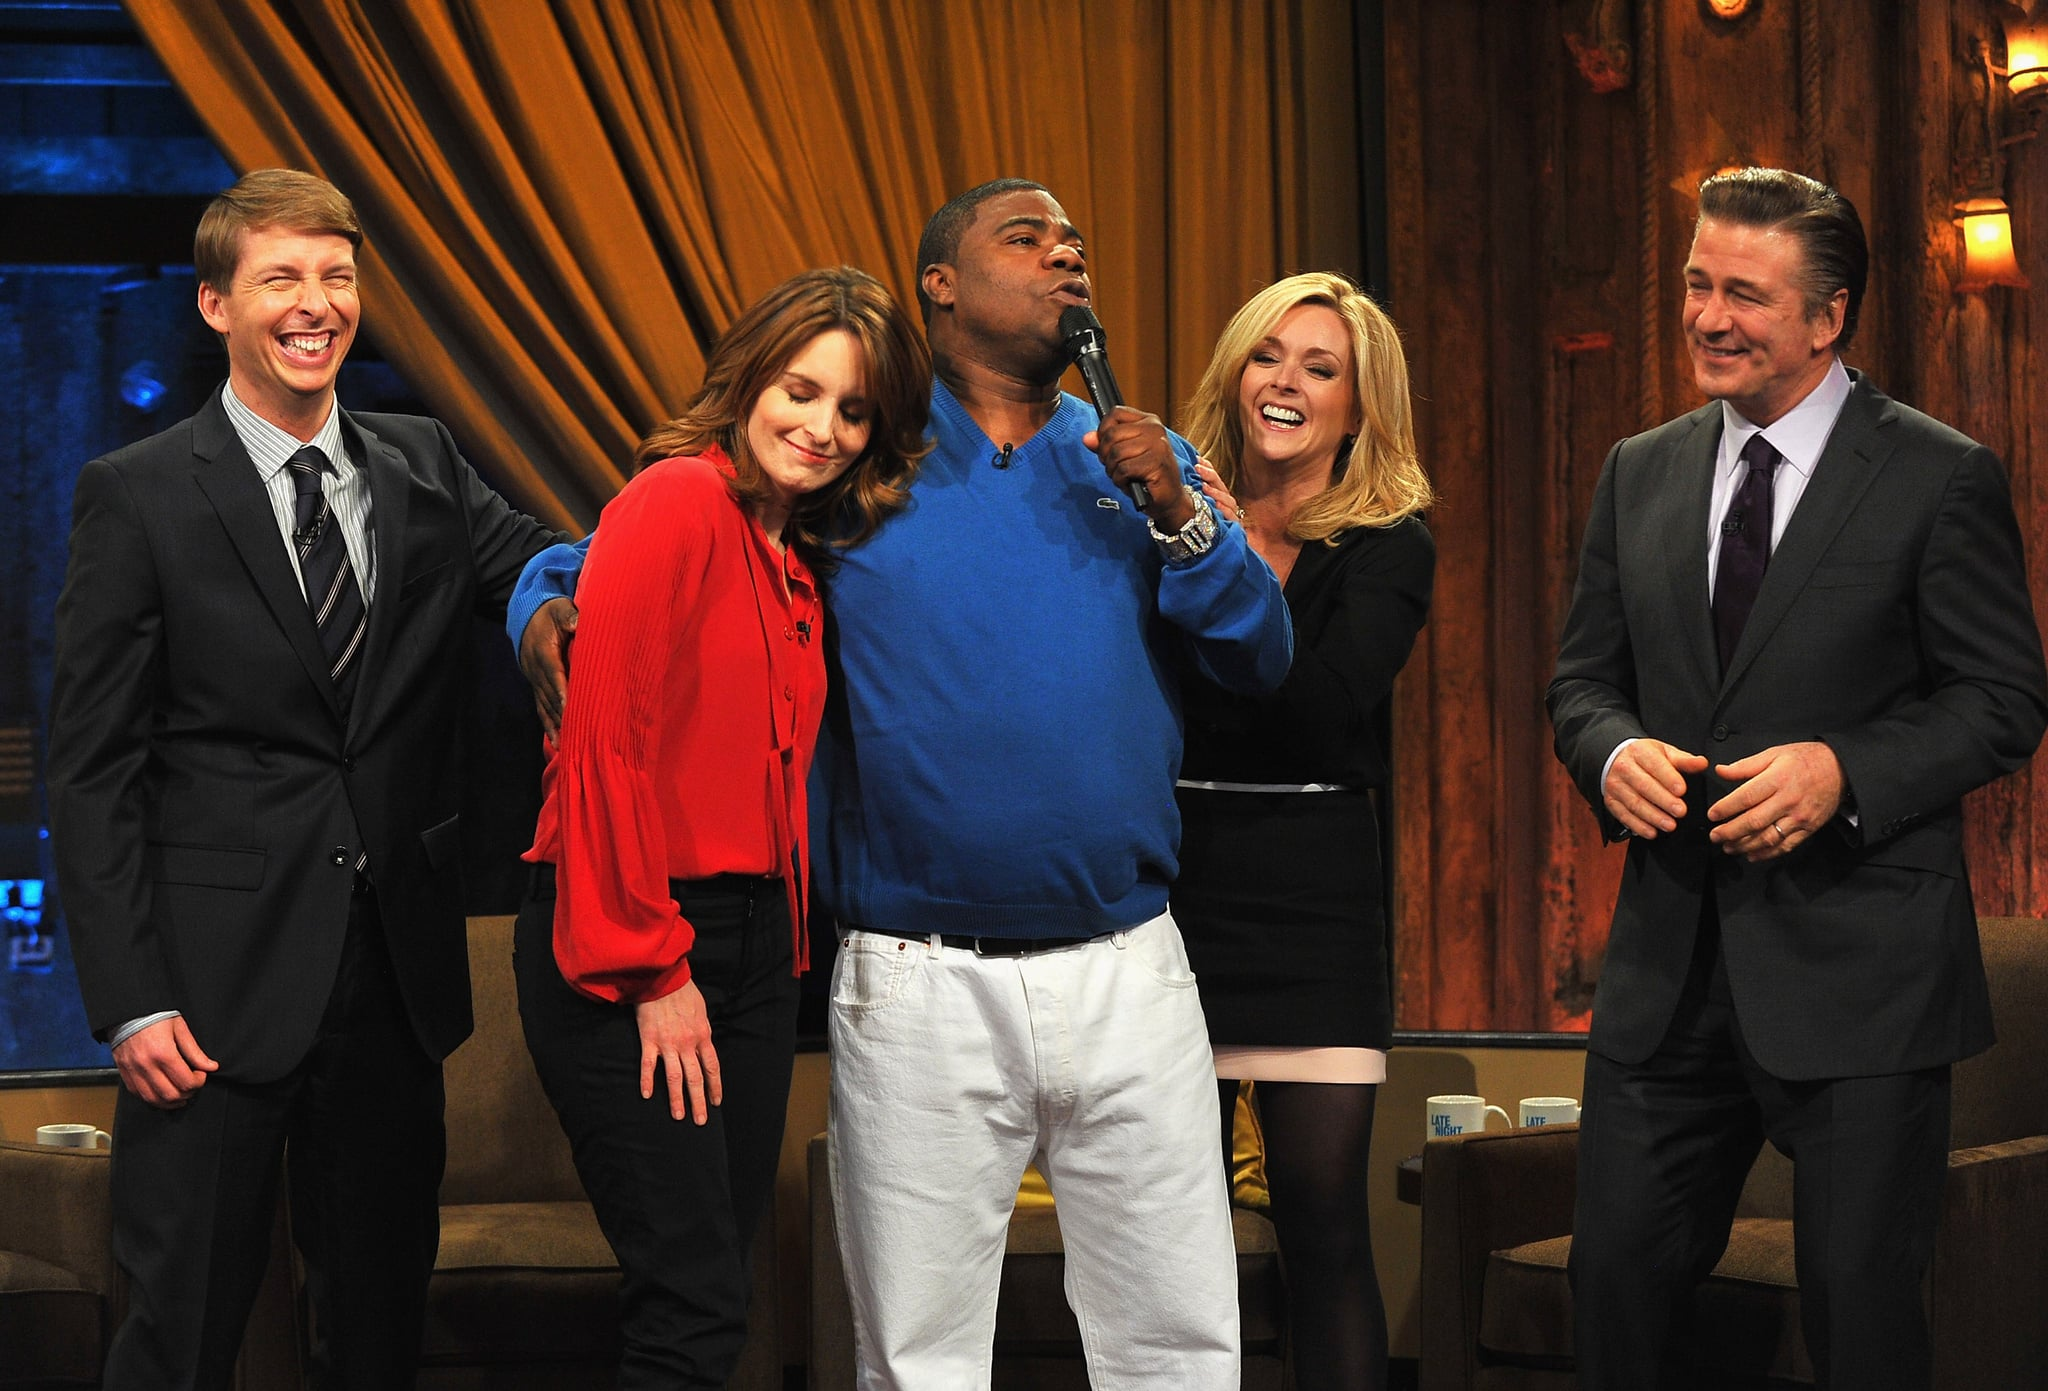 NEW YORK, NY - JANUARY 10:  Jack McBrayer, Tina Fey, Tracy Morgan, Jane Krakowski and Alec Baldwin visit